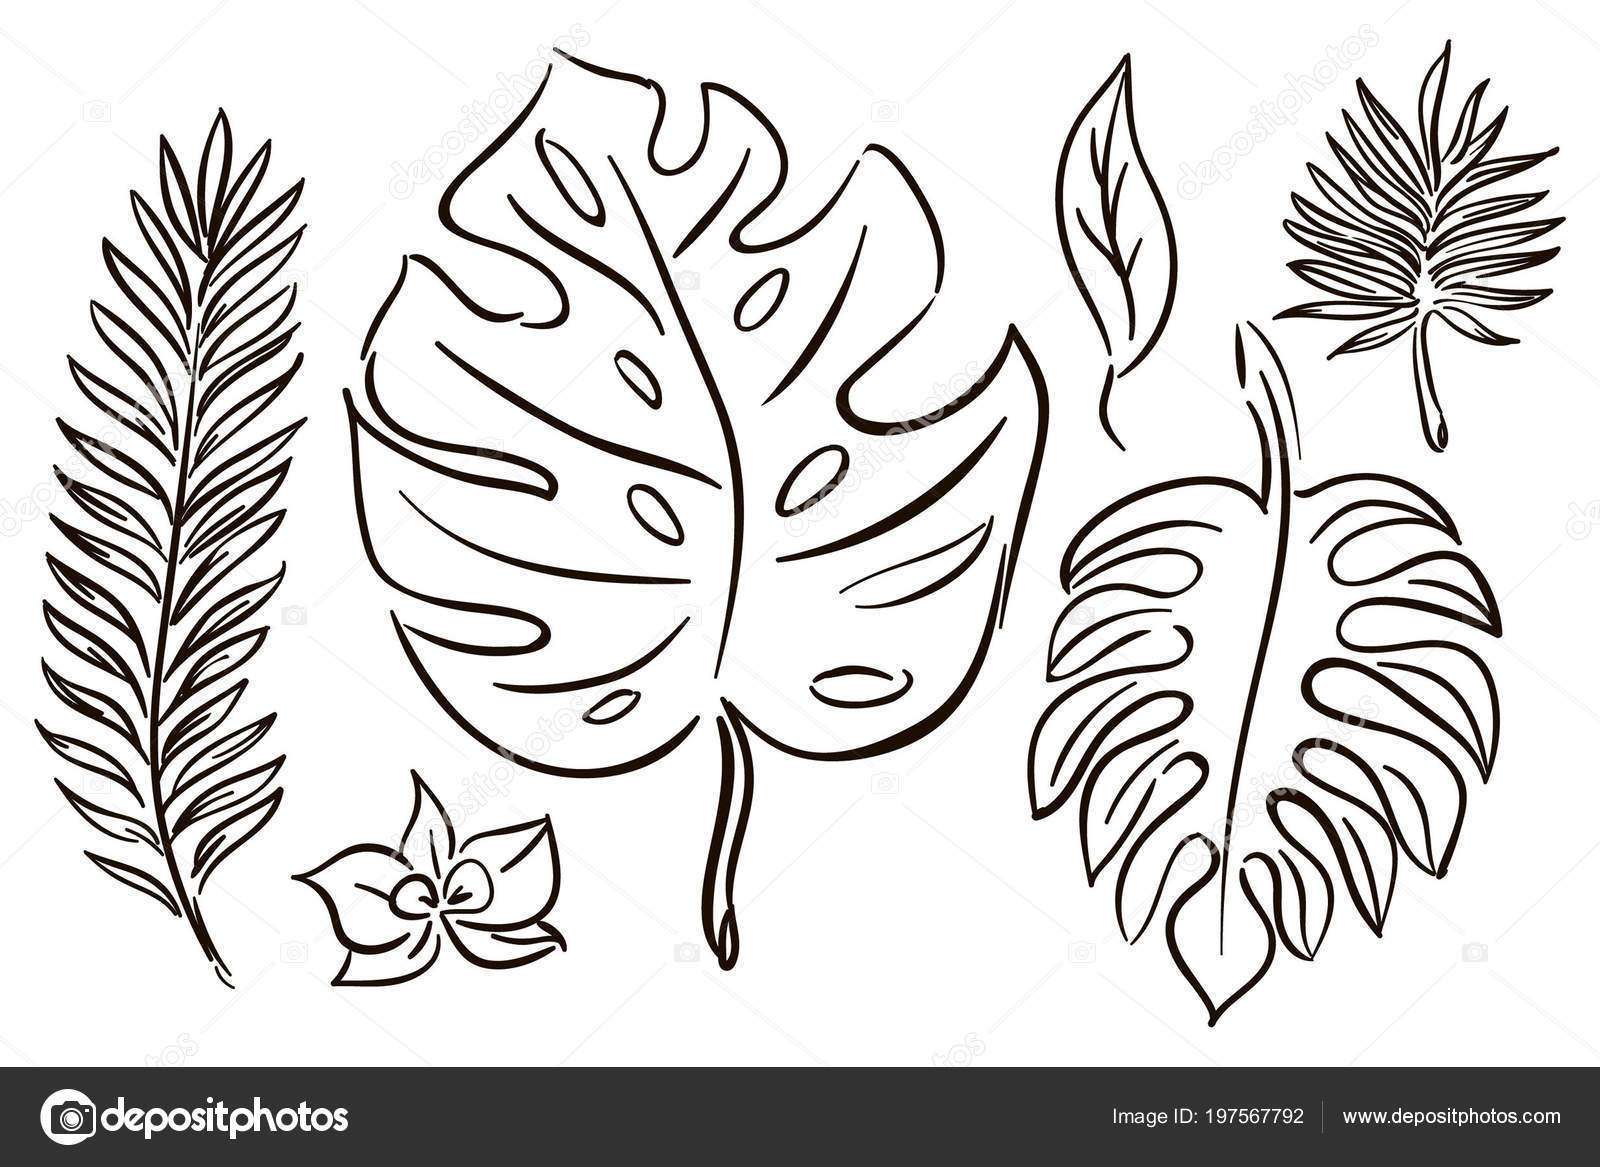 Tropical Leaf Outline Set Tropical Leaves Outline Hand Drawing Stock Vector C Inna Kunanbaeva Gmail Com 197567792 Tropical exotic plants with continuous line leaf and trendy organic shapes of pastel colors vector. https depositphotos com 197567792 stock illustration set tropical leaves outline hand html